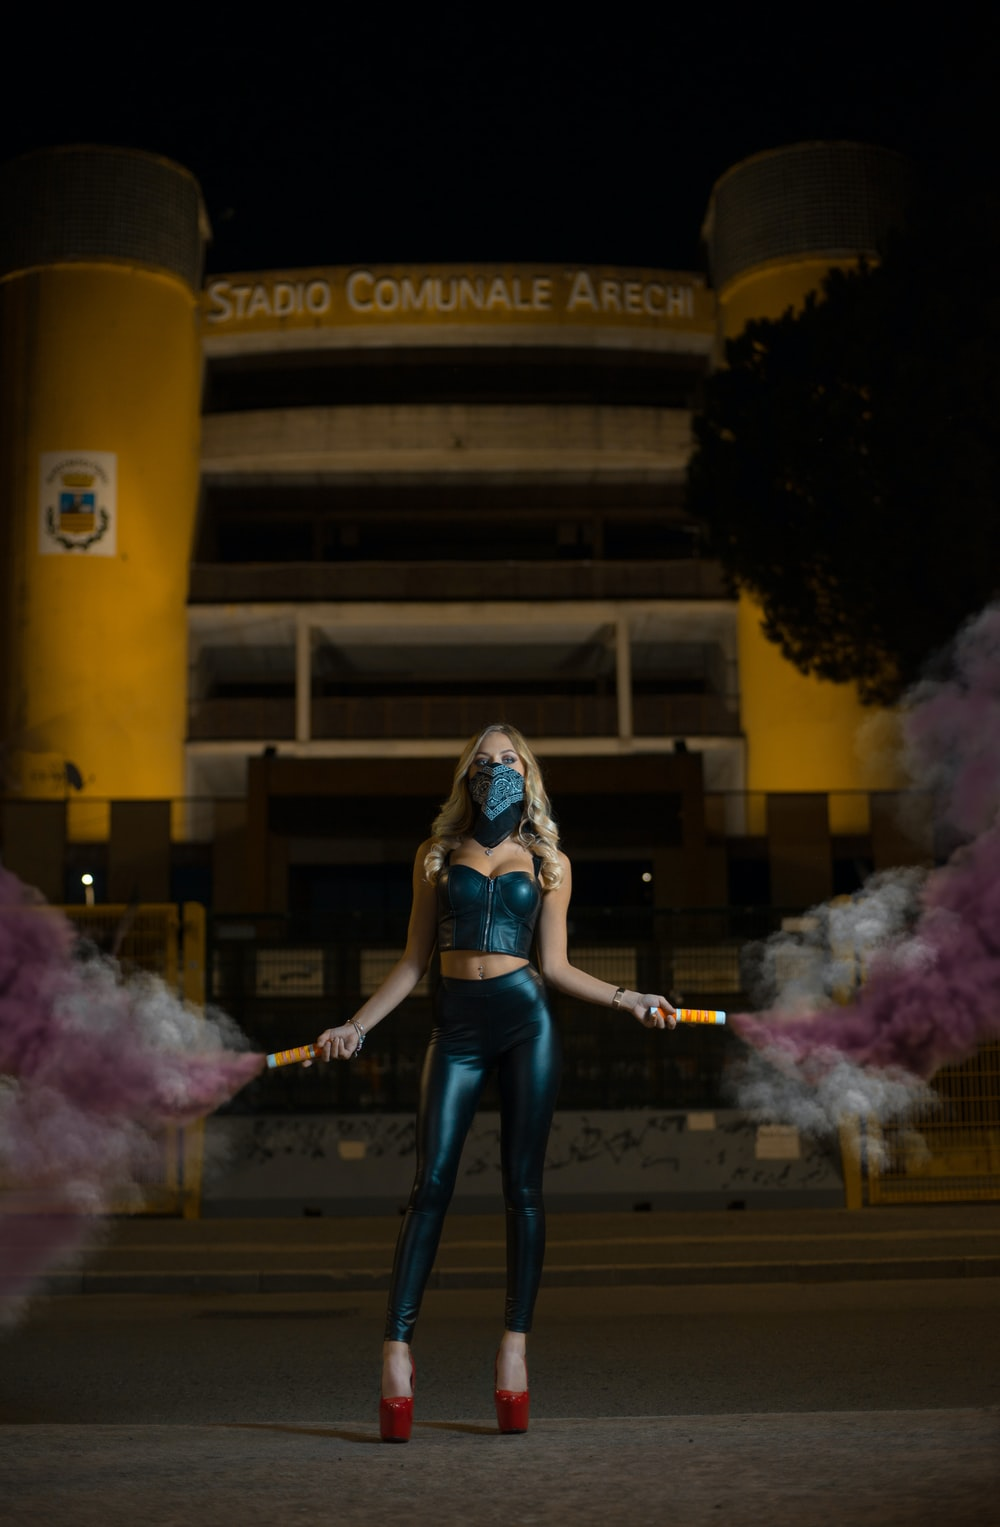 woman standing on pavement holding smoke bombs during night time